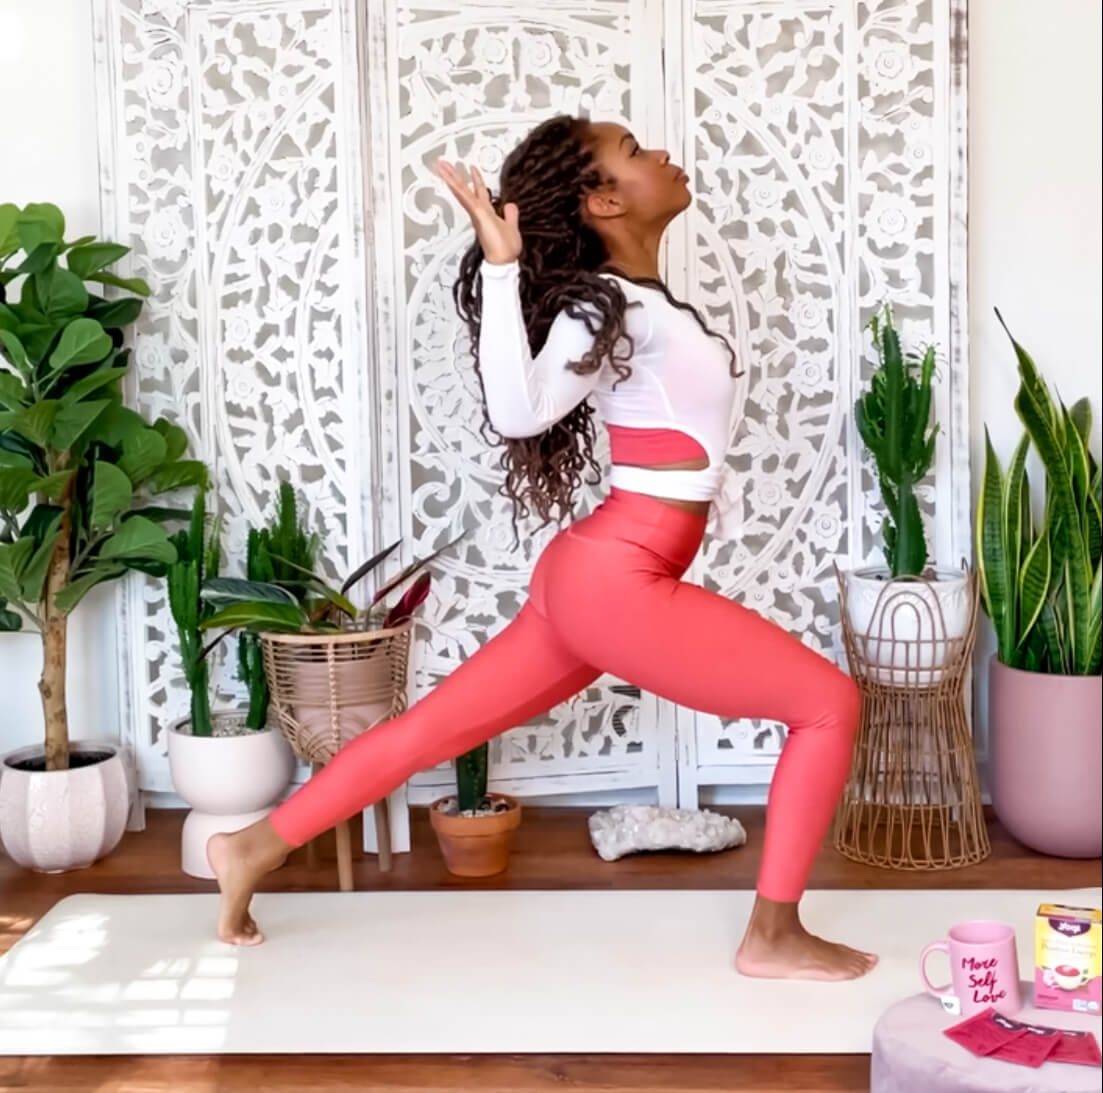 Energize Your Body and Mind with this Energizing Yoga Flow | Yogi Tea